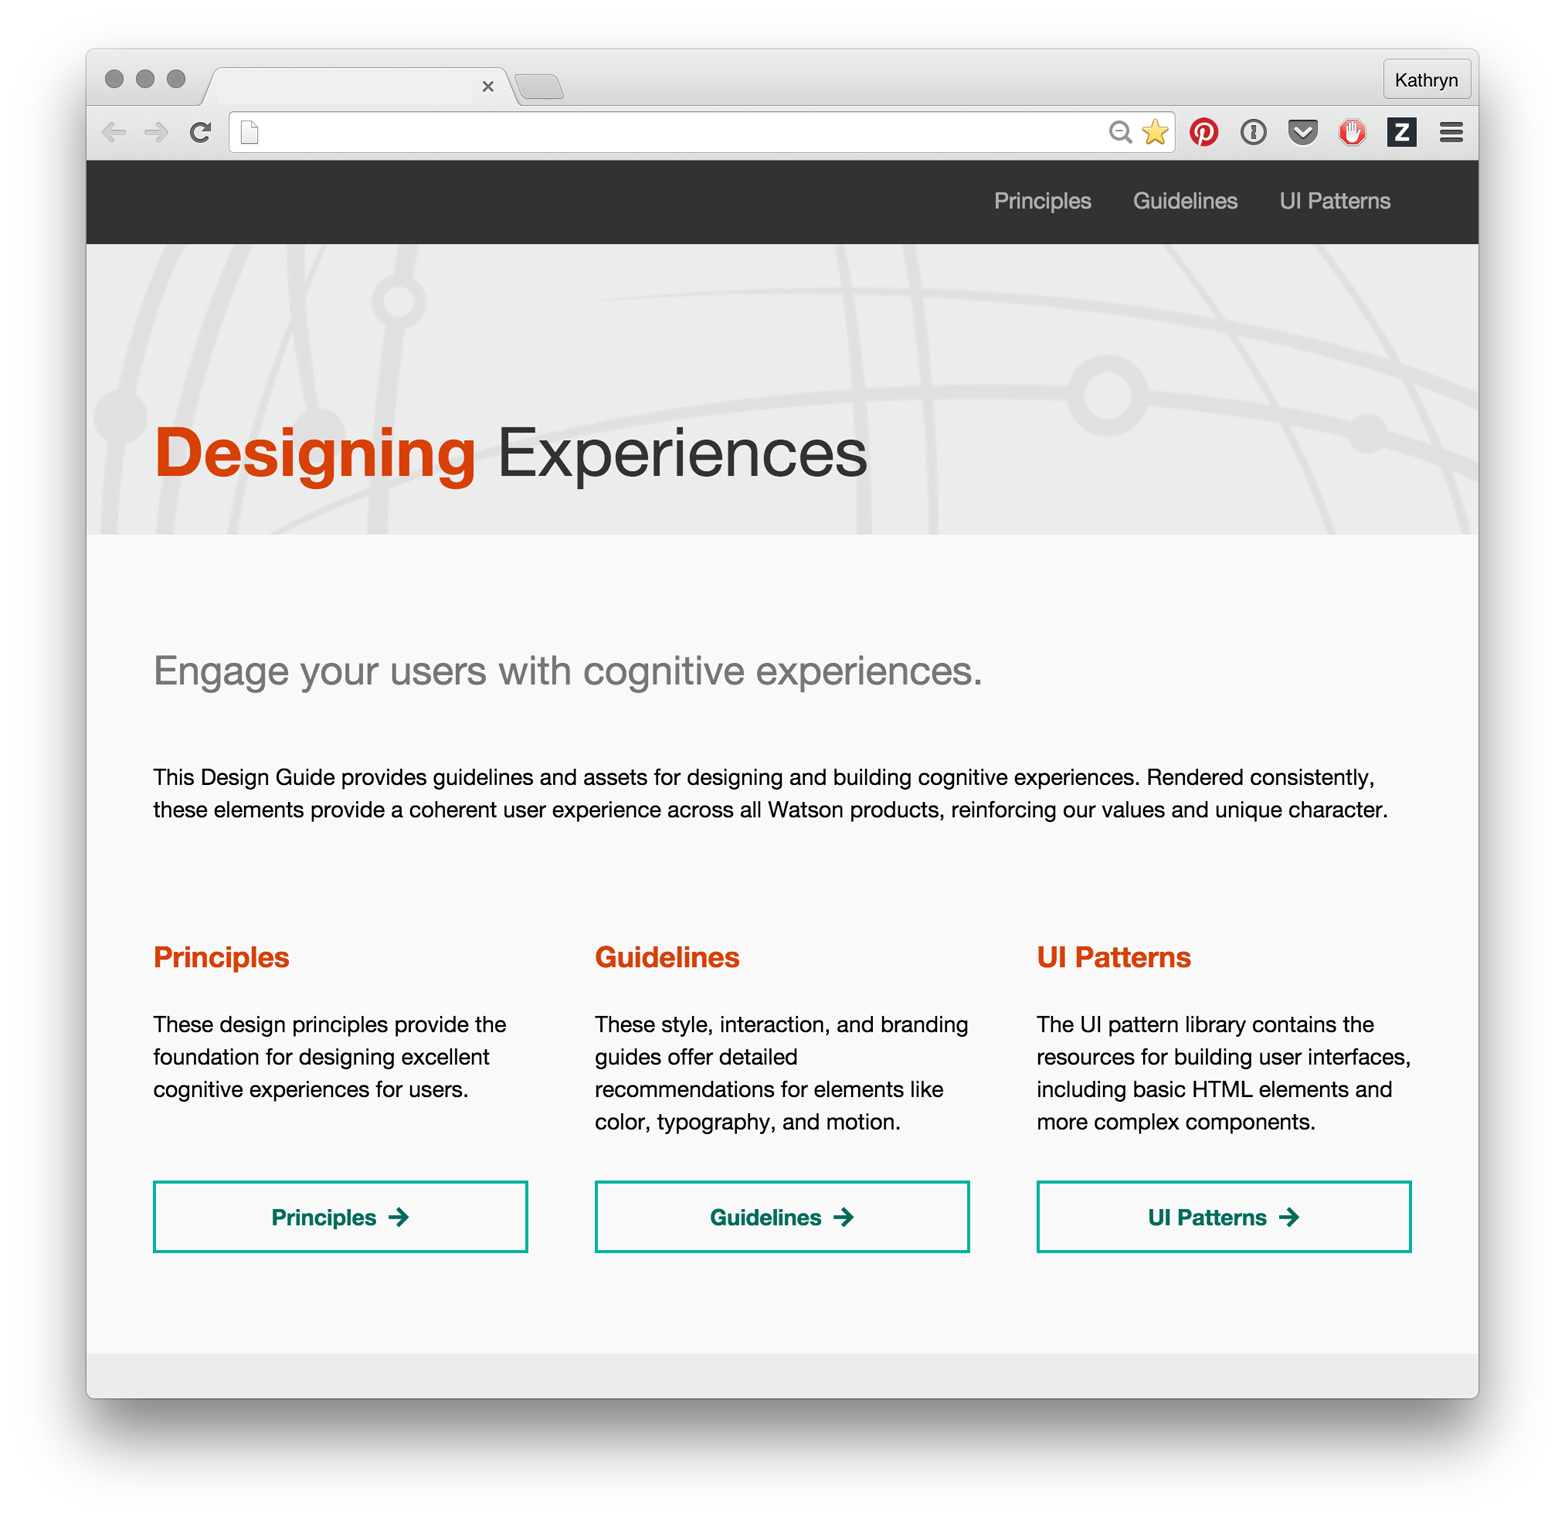 High-fidelity coded prototypes include visual design, animations, and interactions